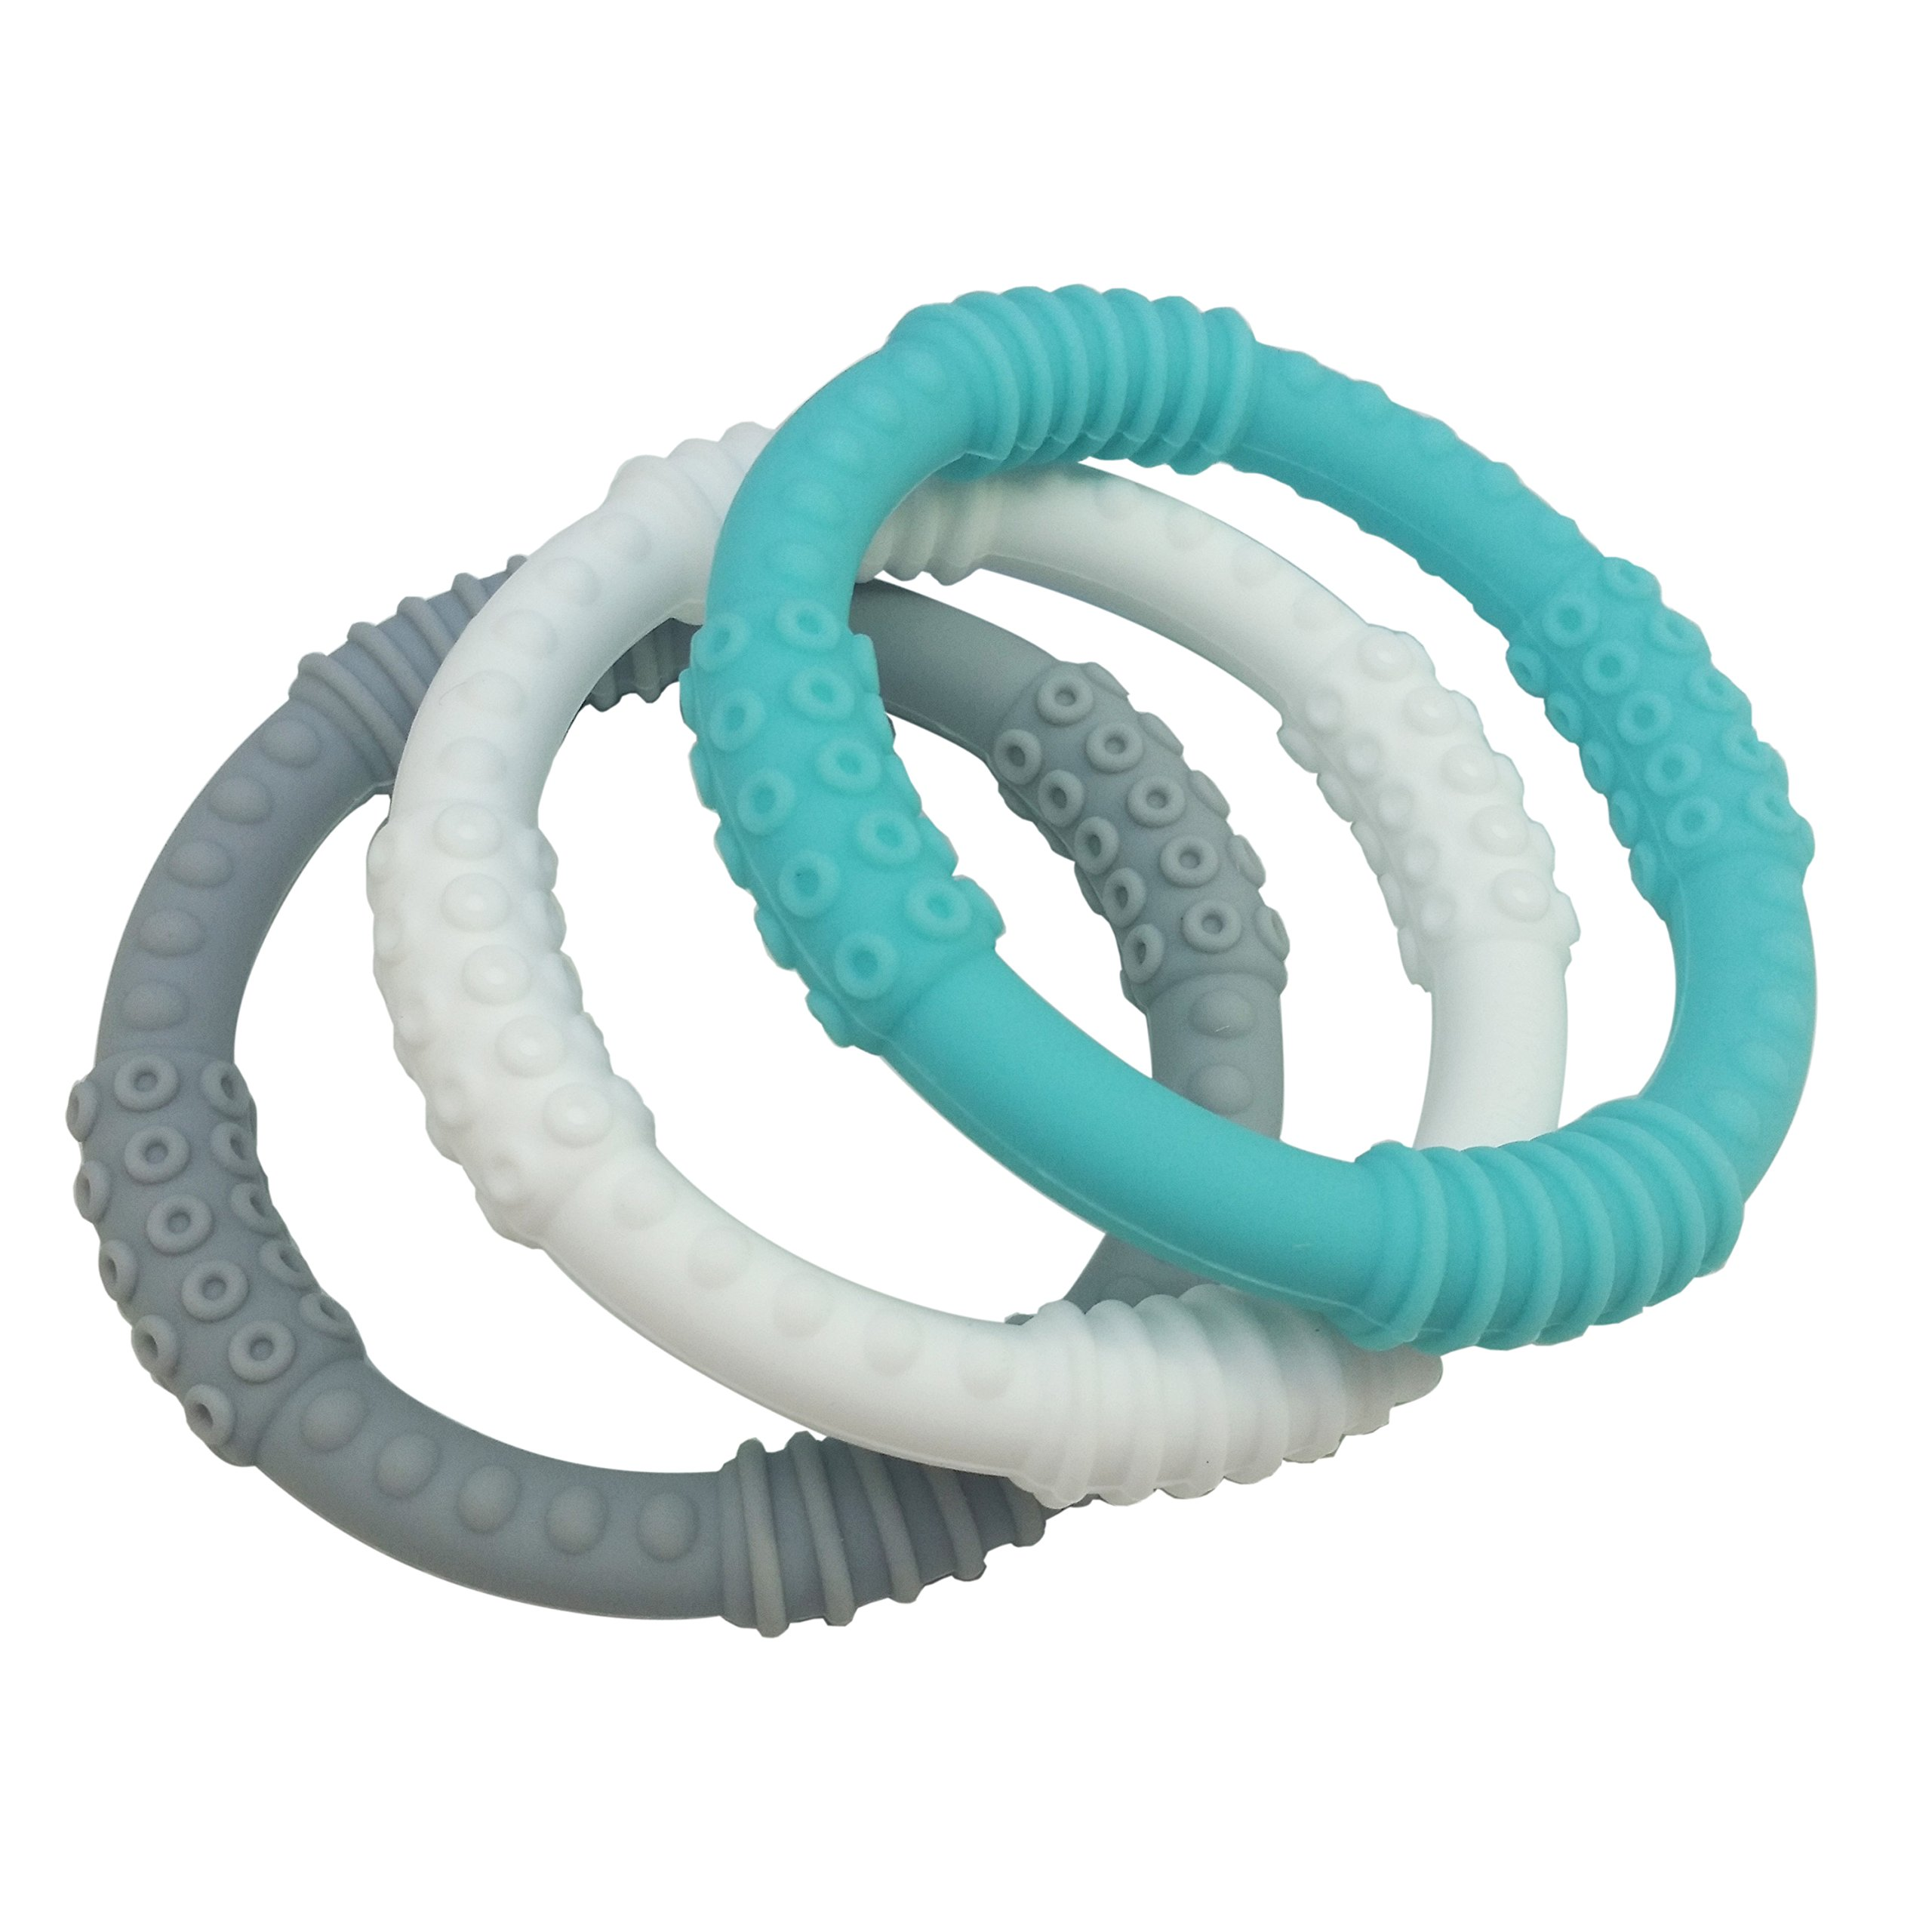 Toxic Teething Rings